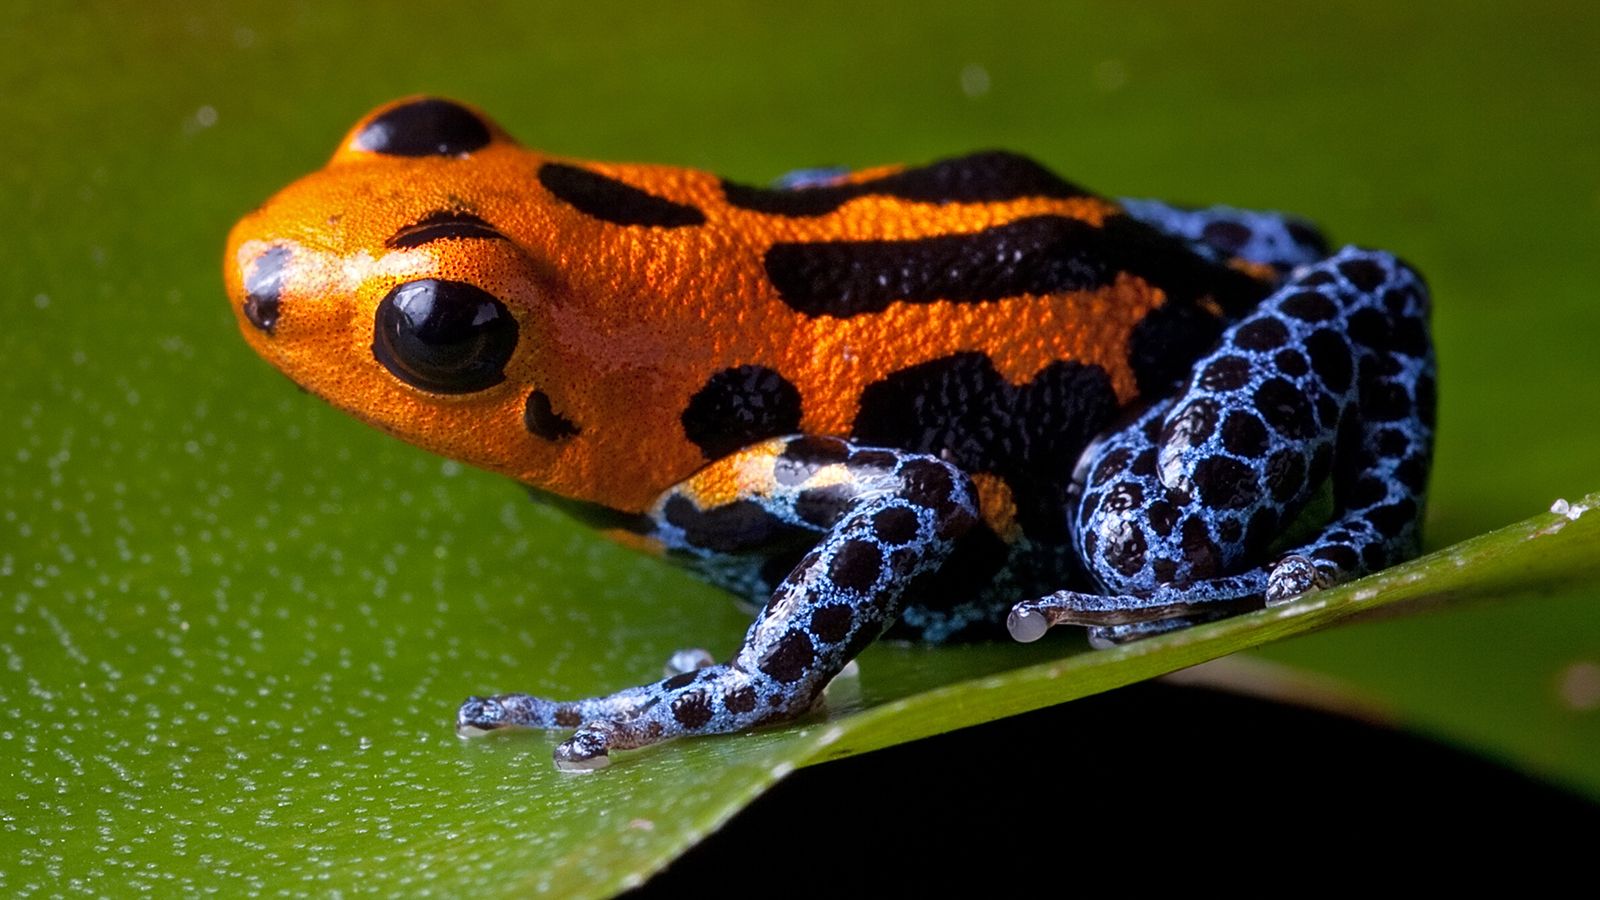 There is also another type of poison dart frog which is called the blue jeans frog it has a red body with blue legs